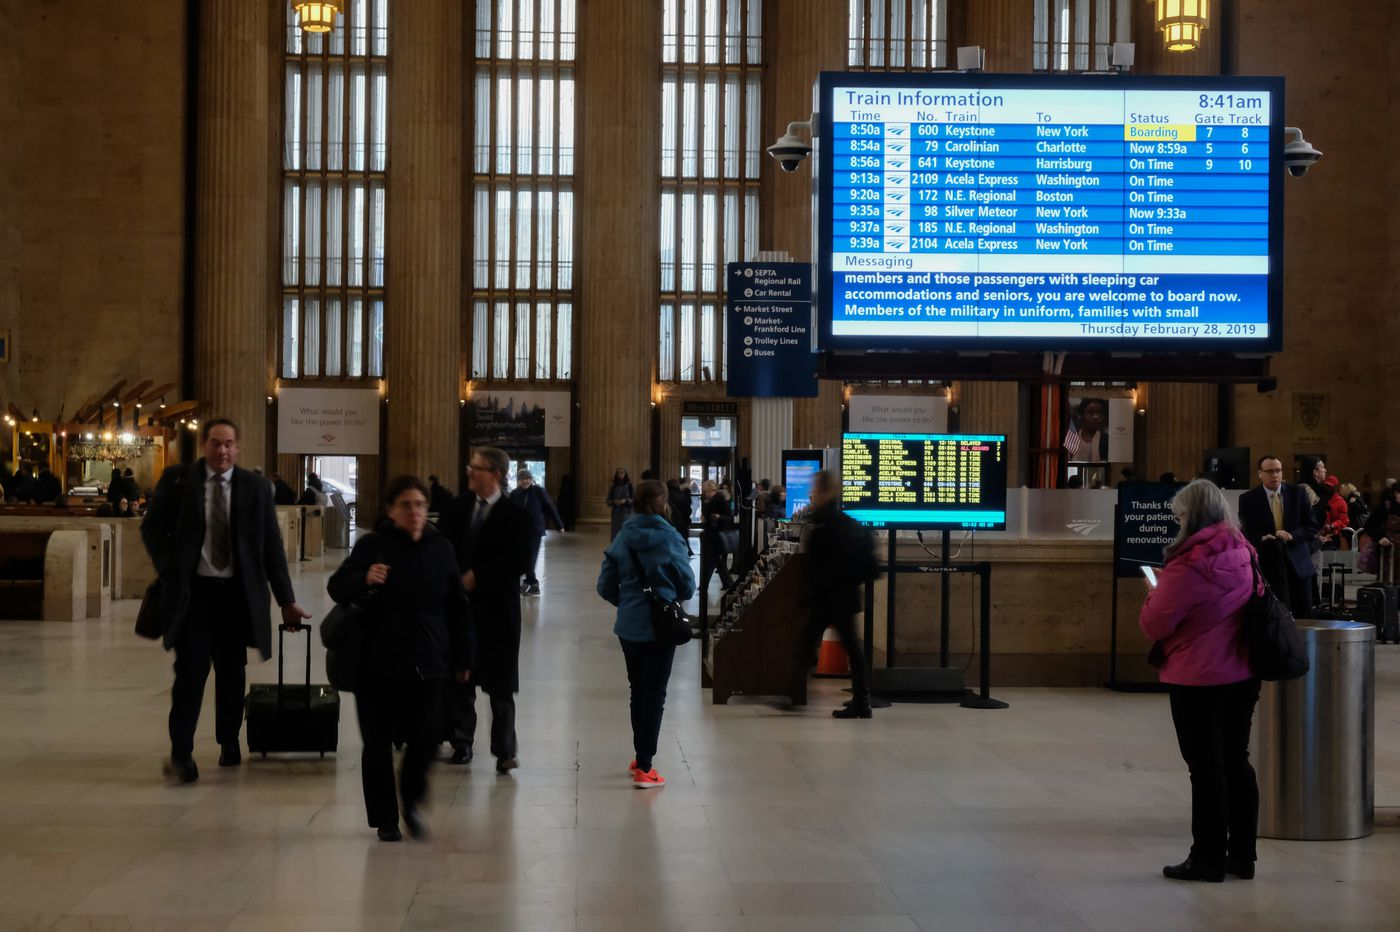 Amtrak's new digital sign at 30th St. Station is up and running